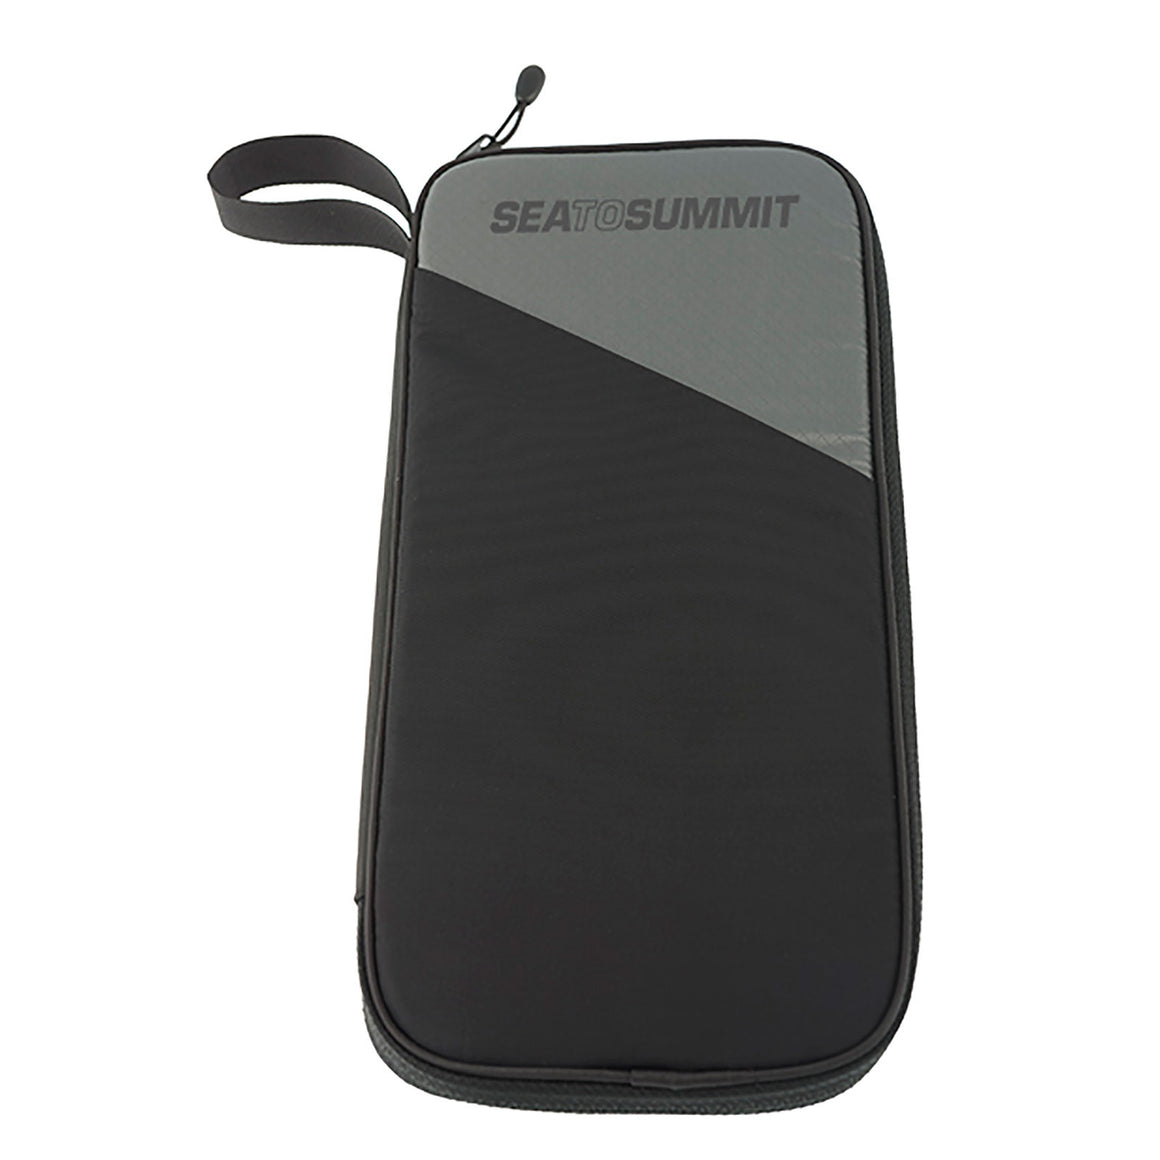 Sea To Summit TravellingLight RFID Travel Wallet: Black/Grey - Jetsettr.com.au - 1